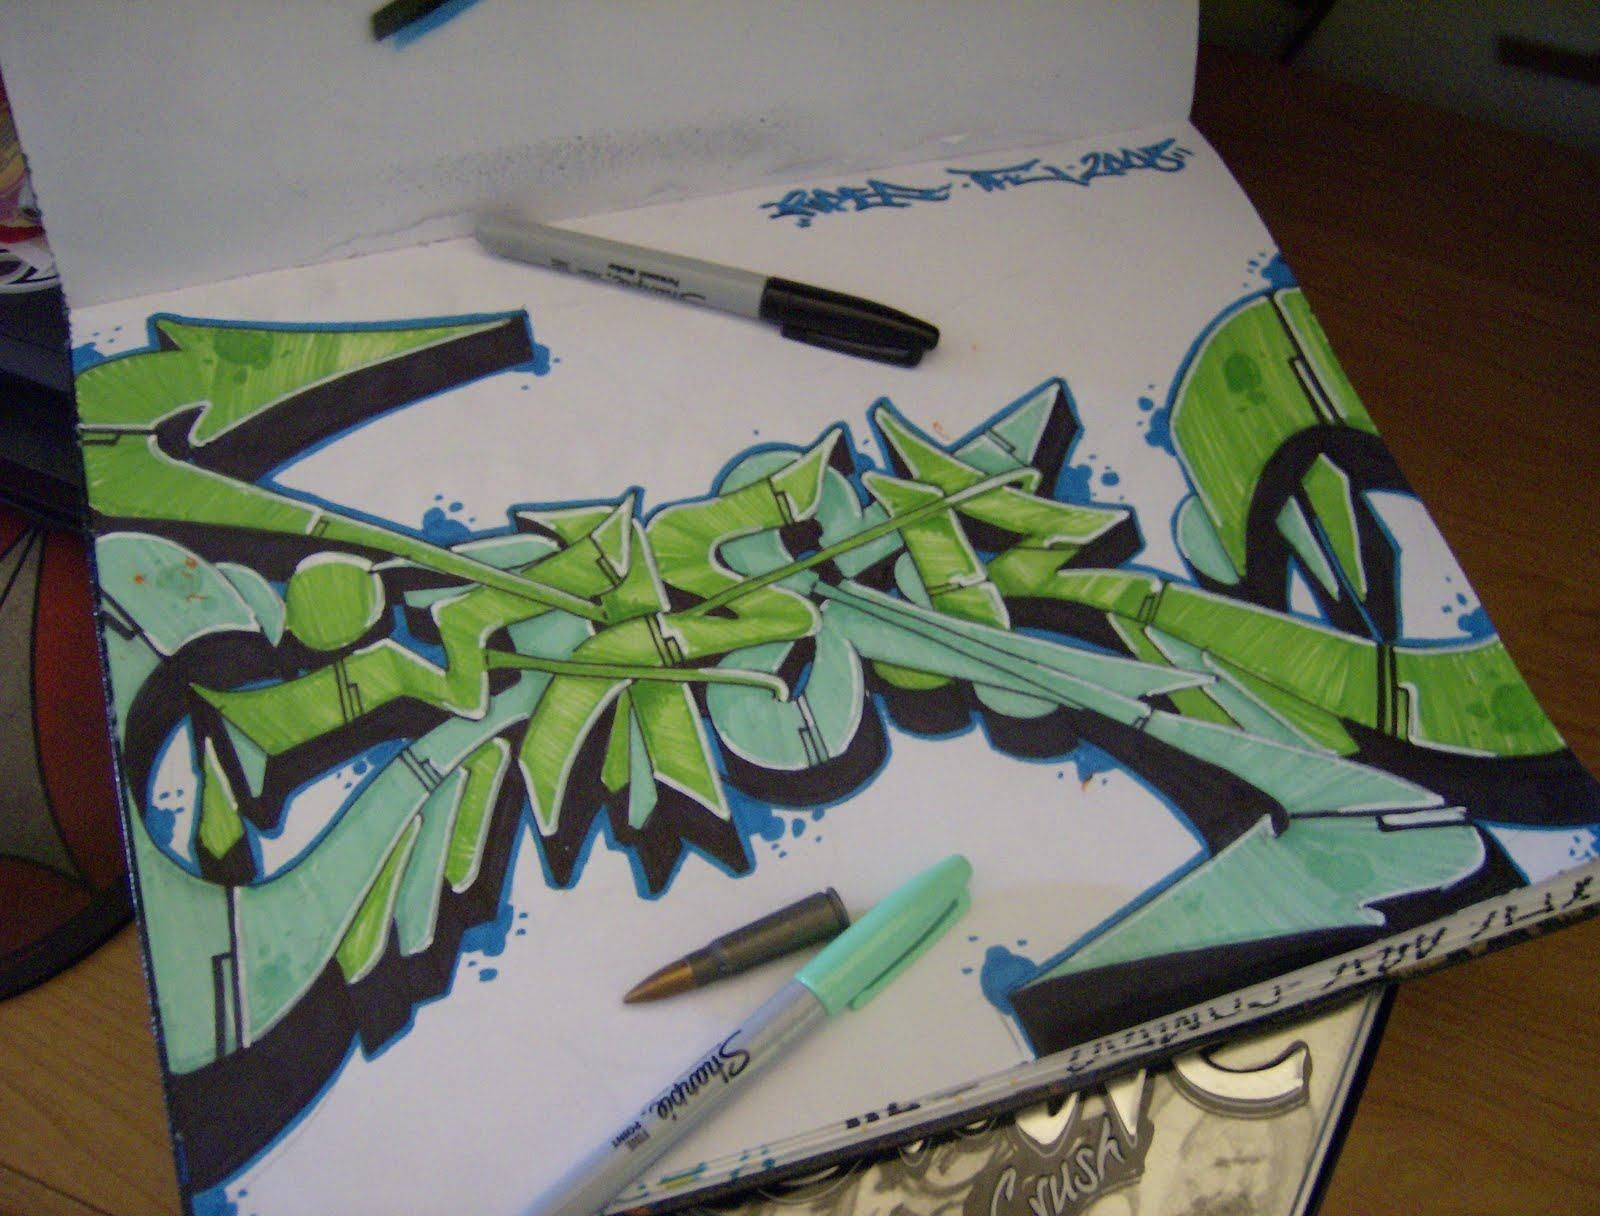 Sketch Viper Graffiti with Wildstyle Character on Paper